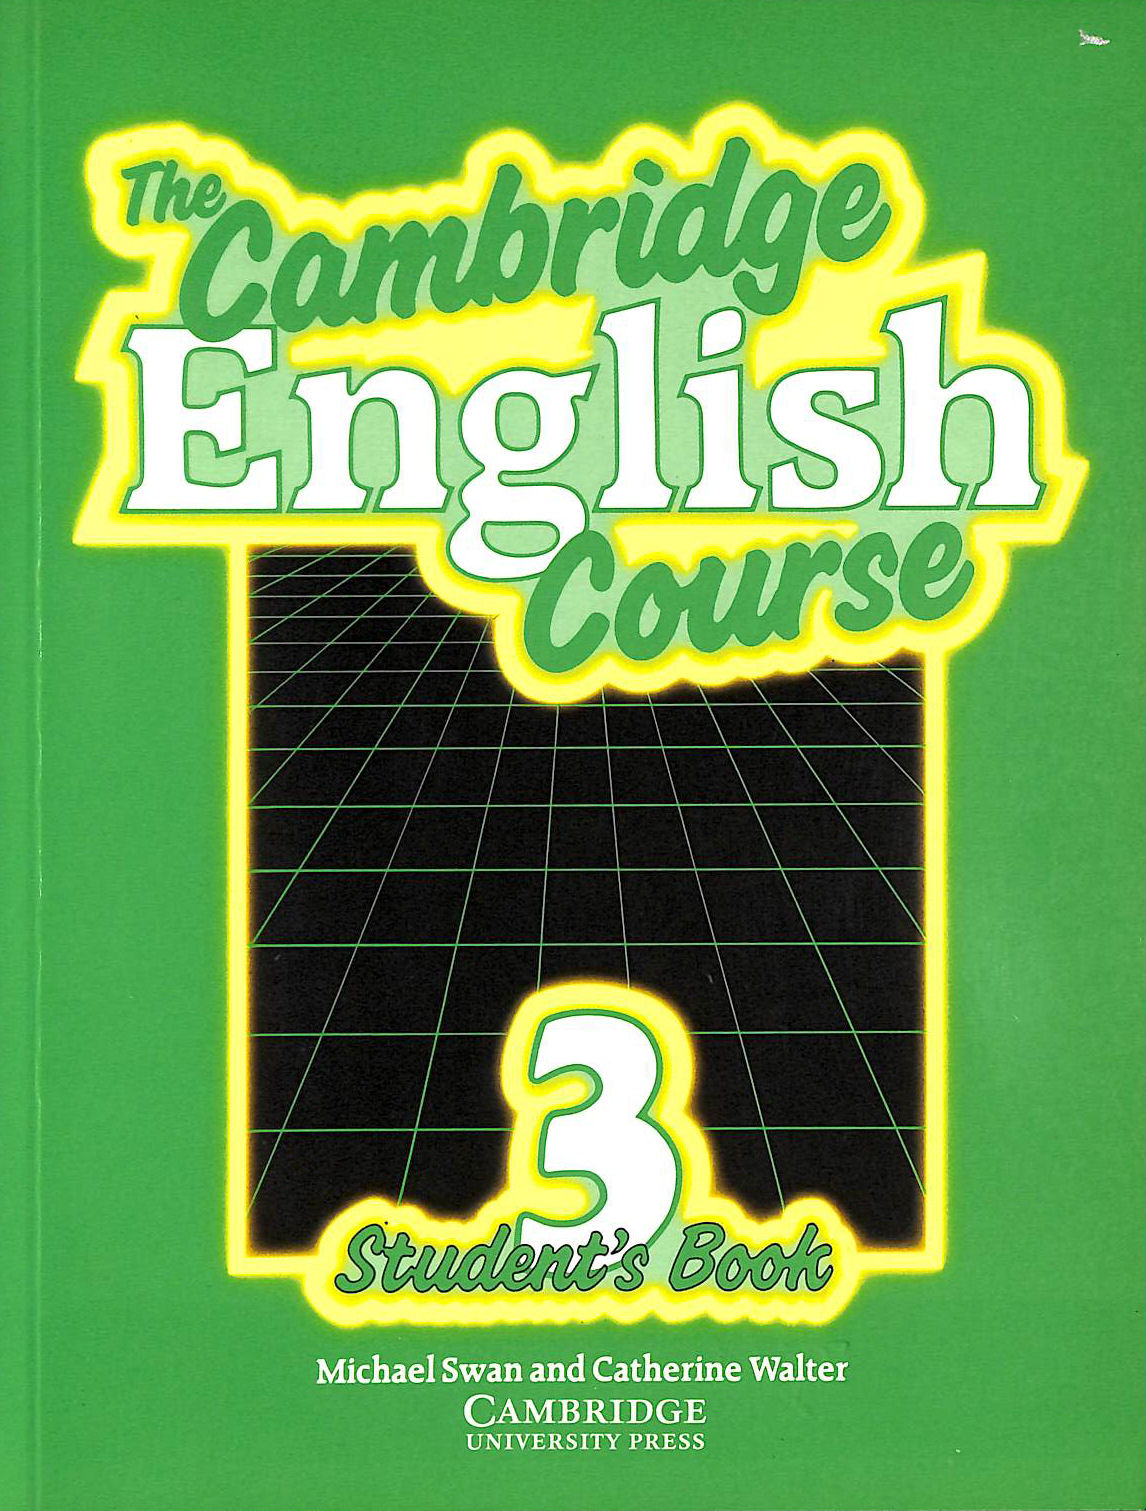 Image for The Cambridge English Course 3 Student's book